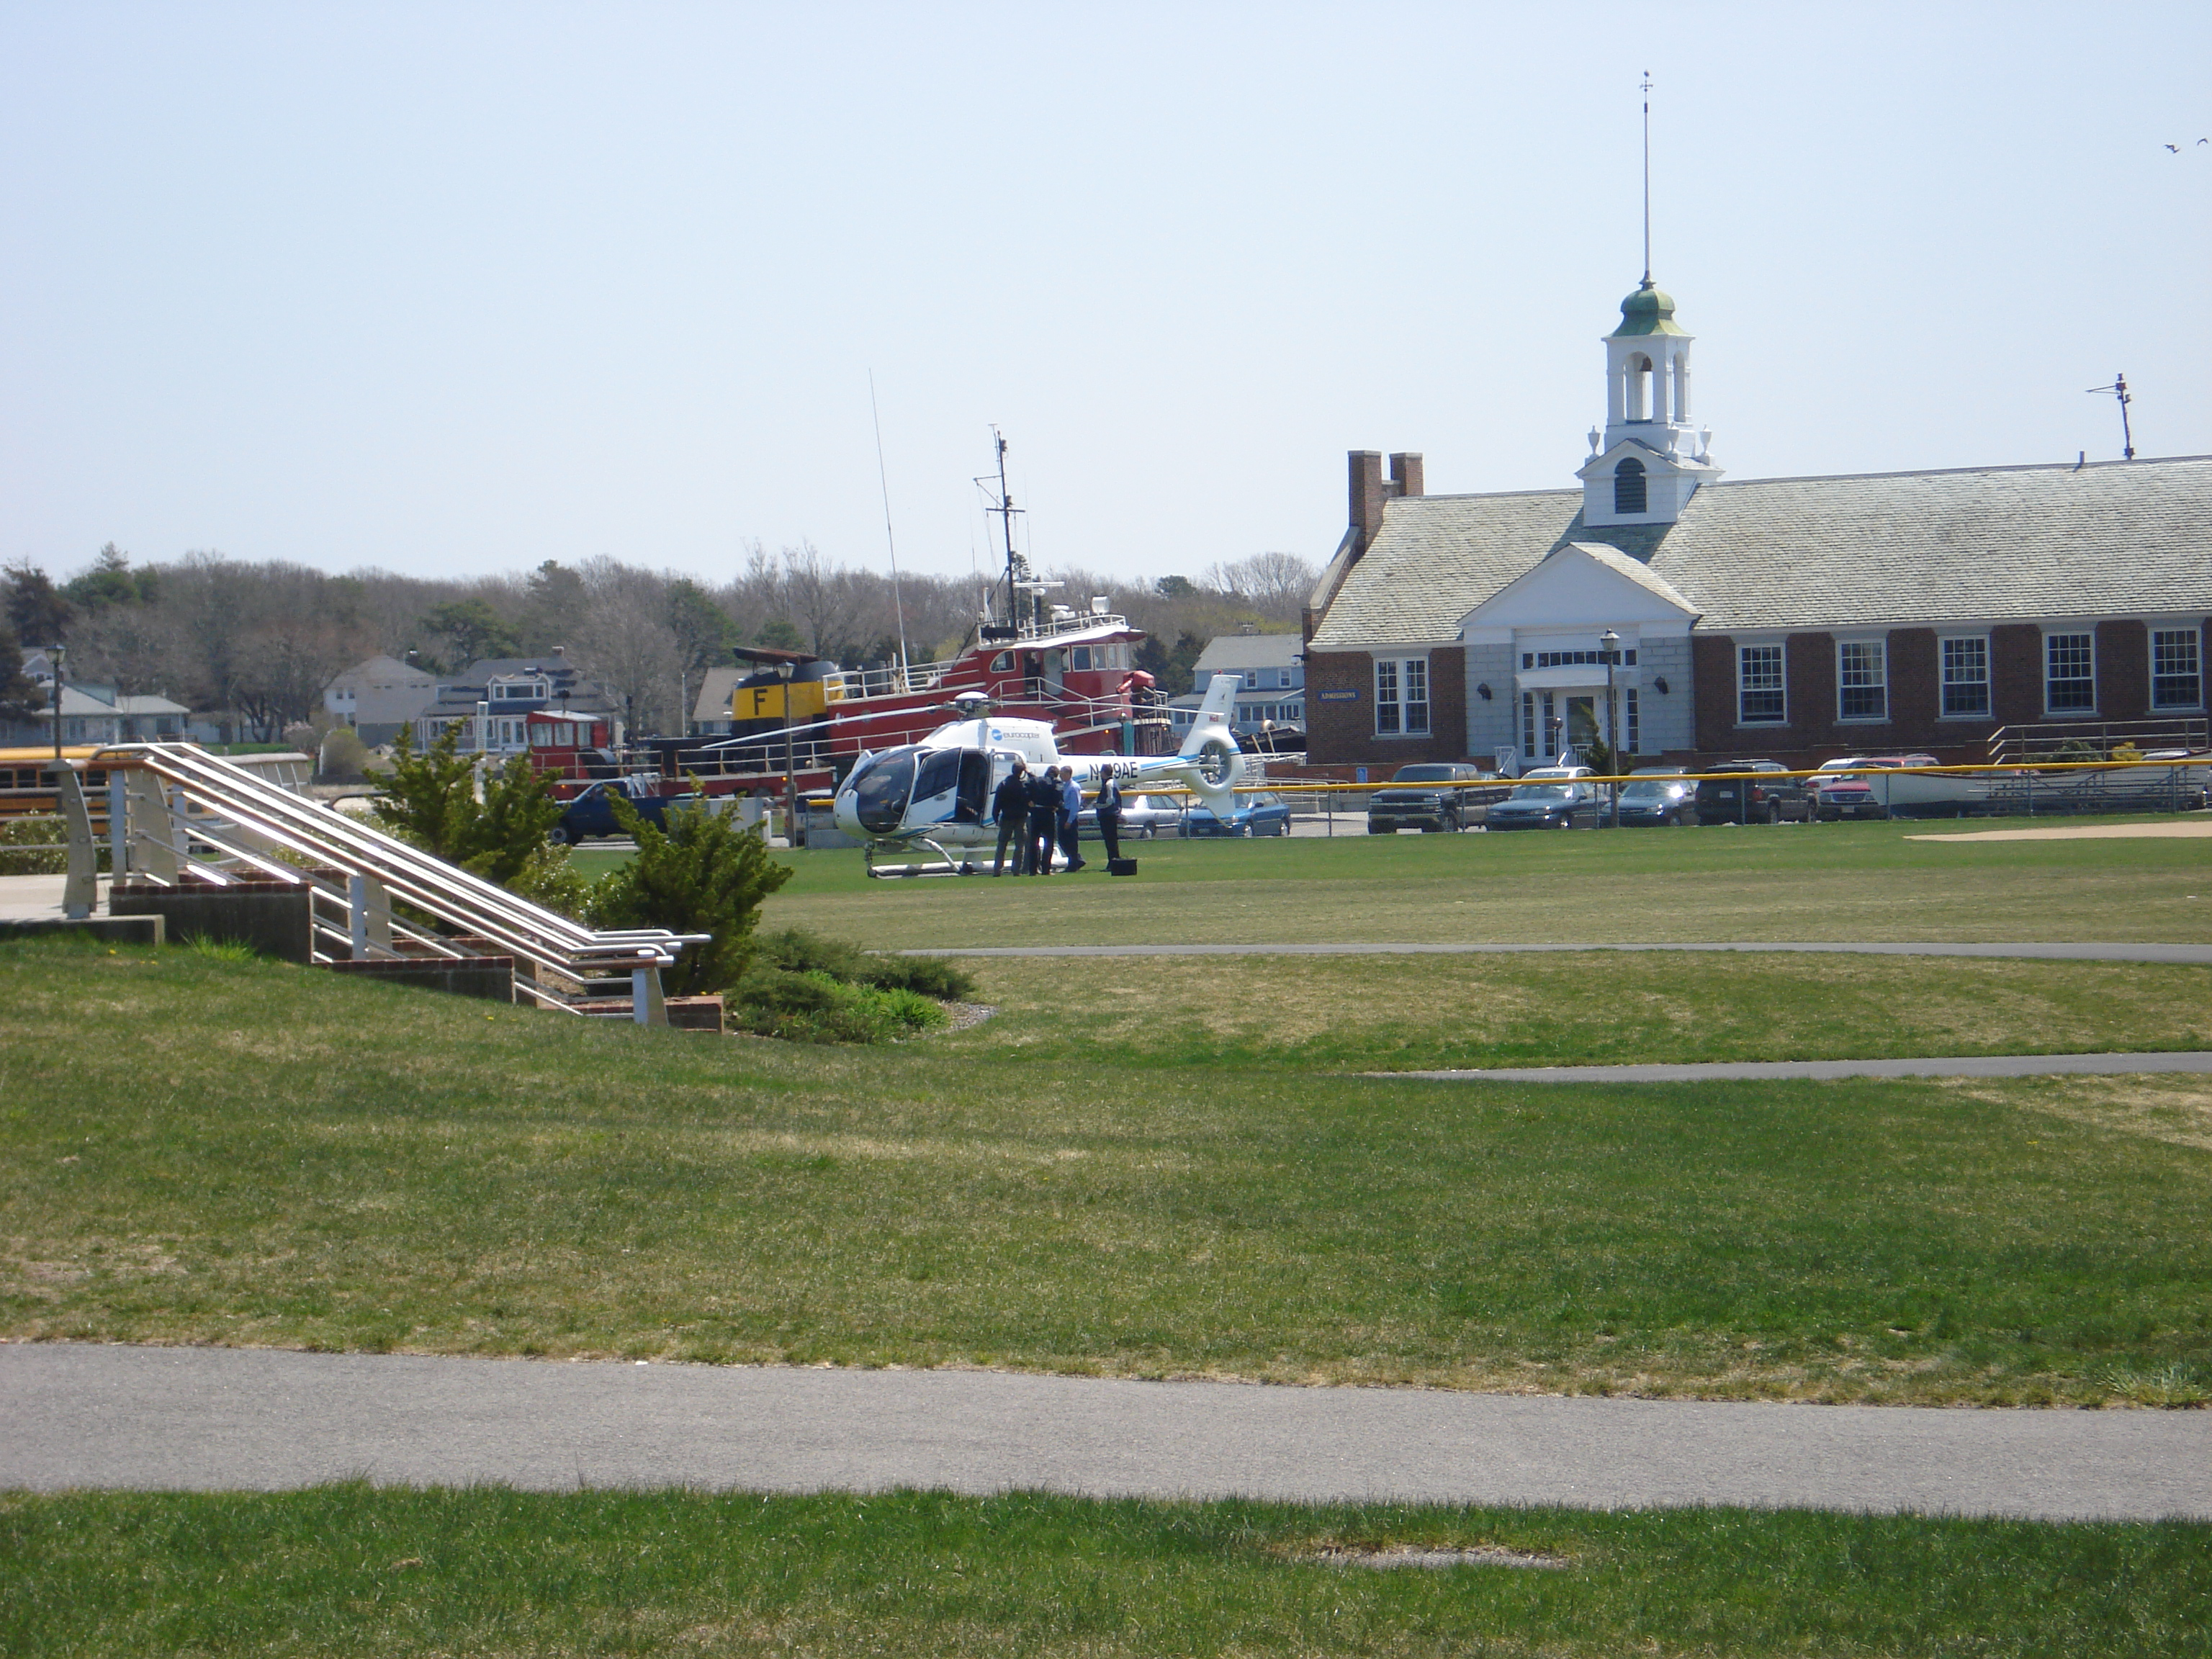 Helicopter at Mass Maritime